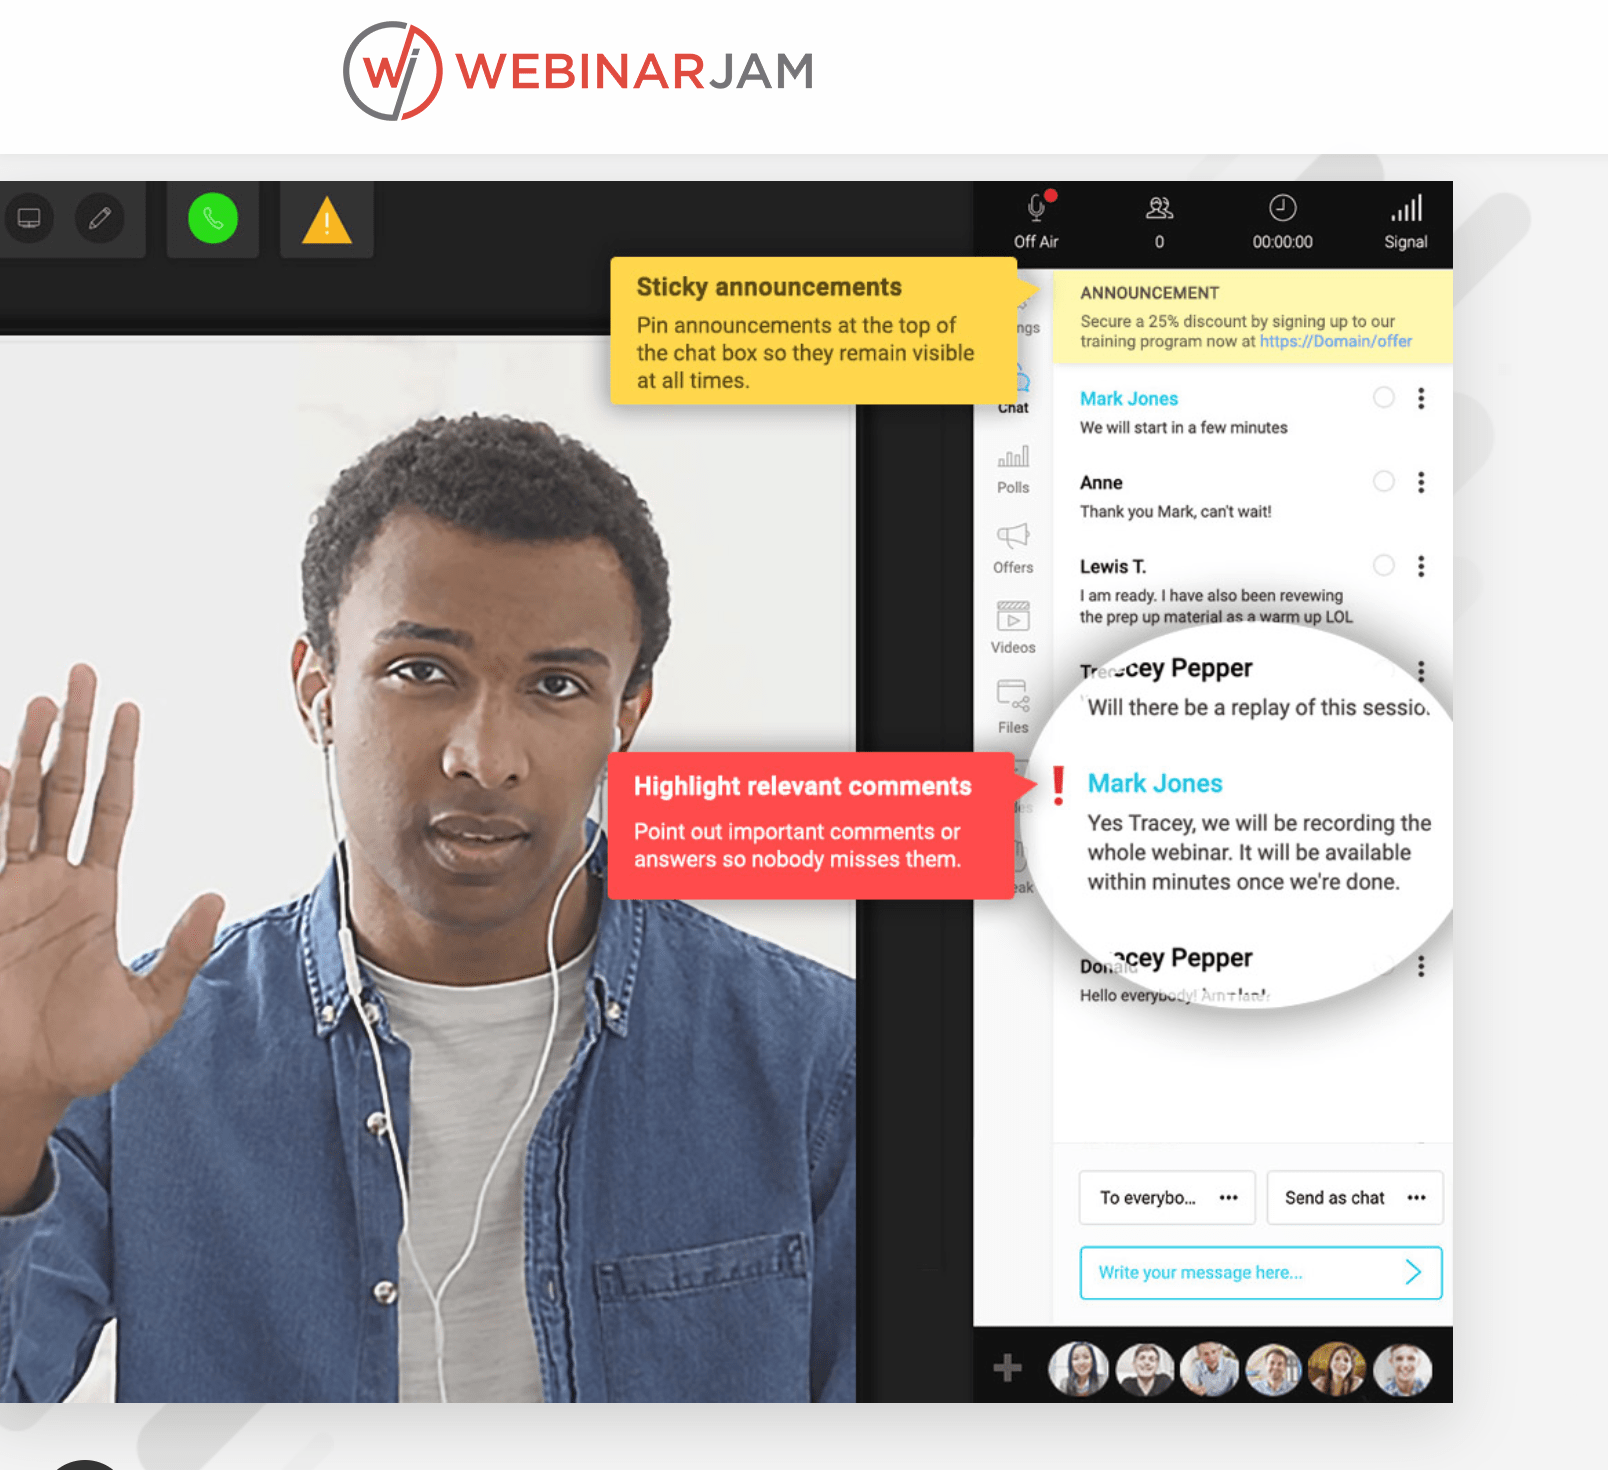 Webinarjam chat sessions